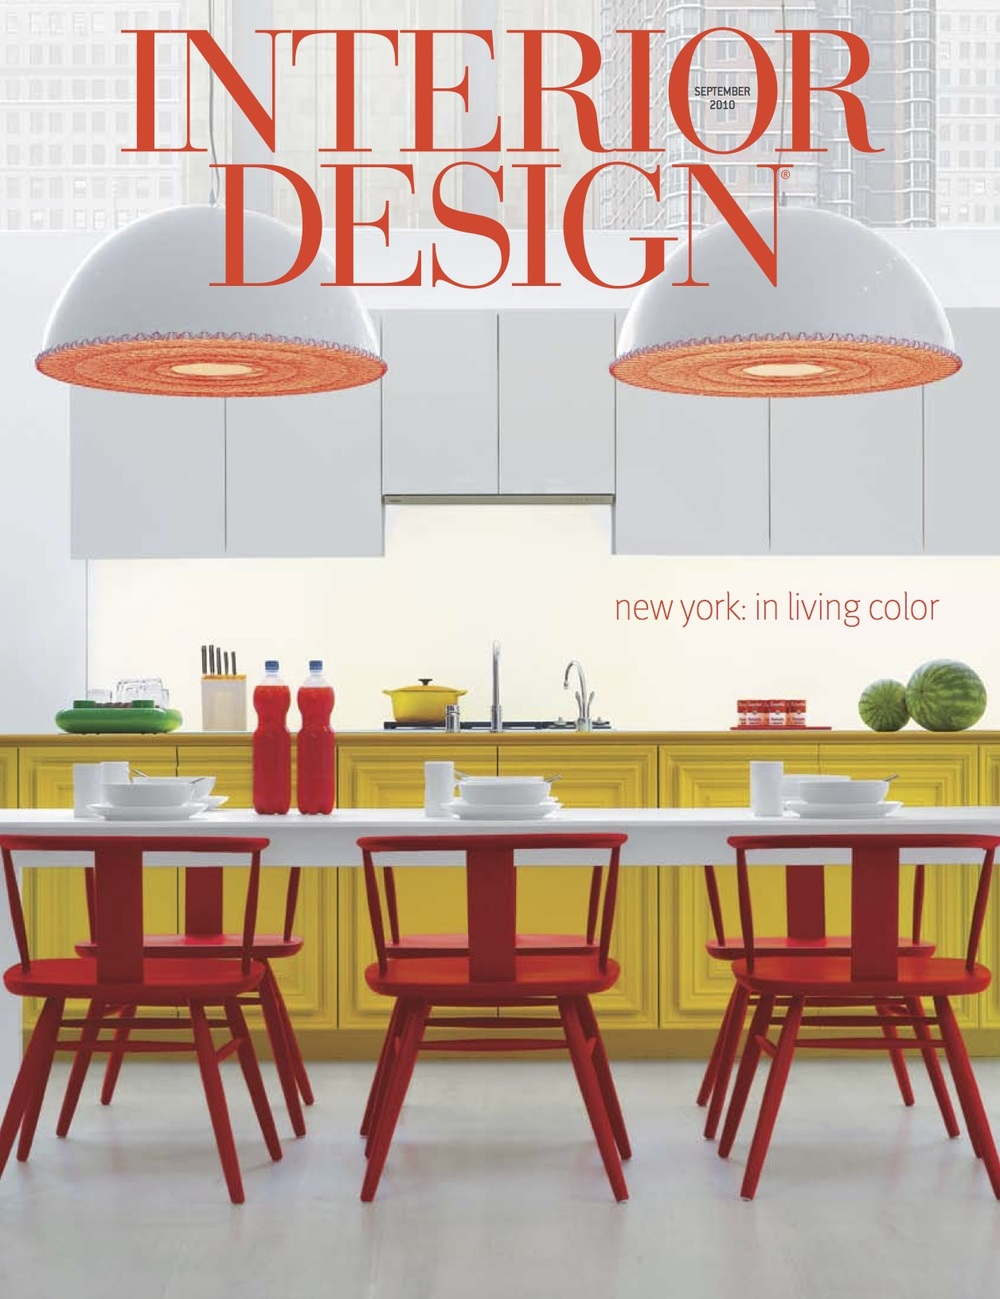 Interior Design September — Alan Tanksley, Inc.